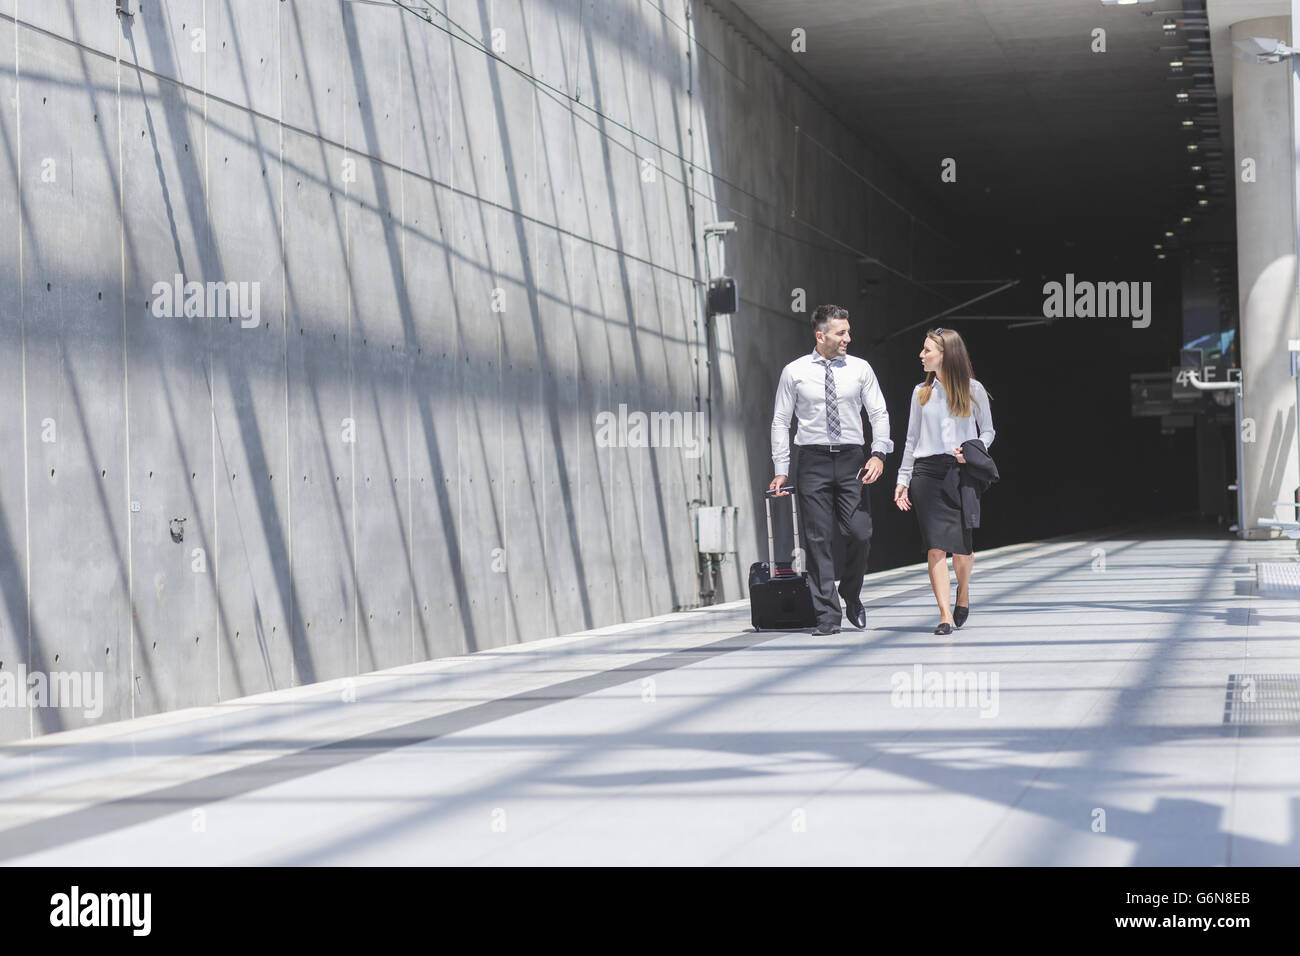 Businessman and businesswoman on the move Photo Stock